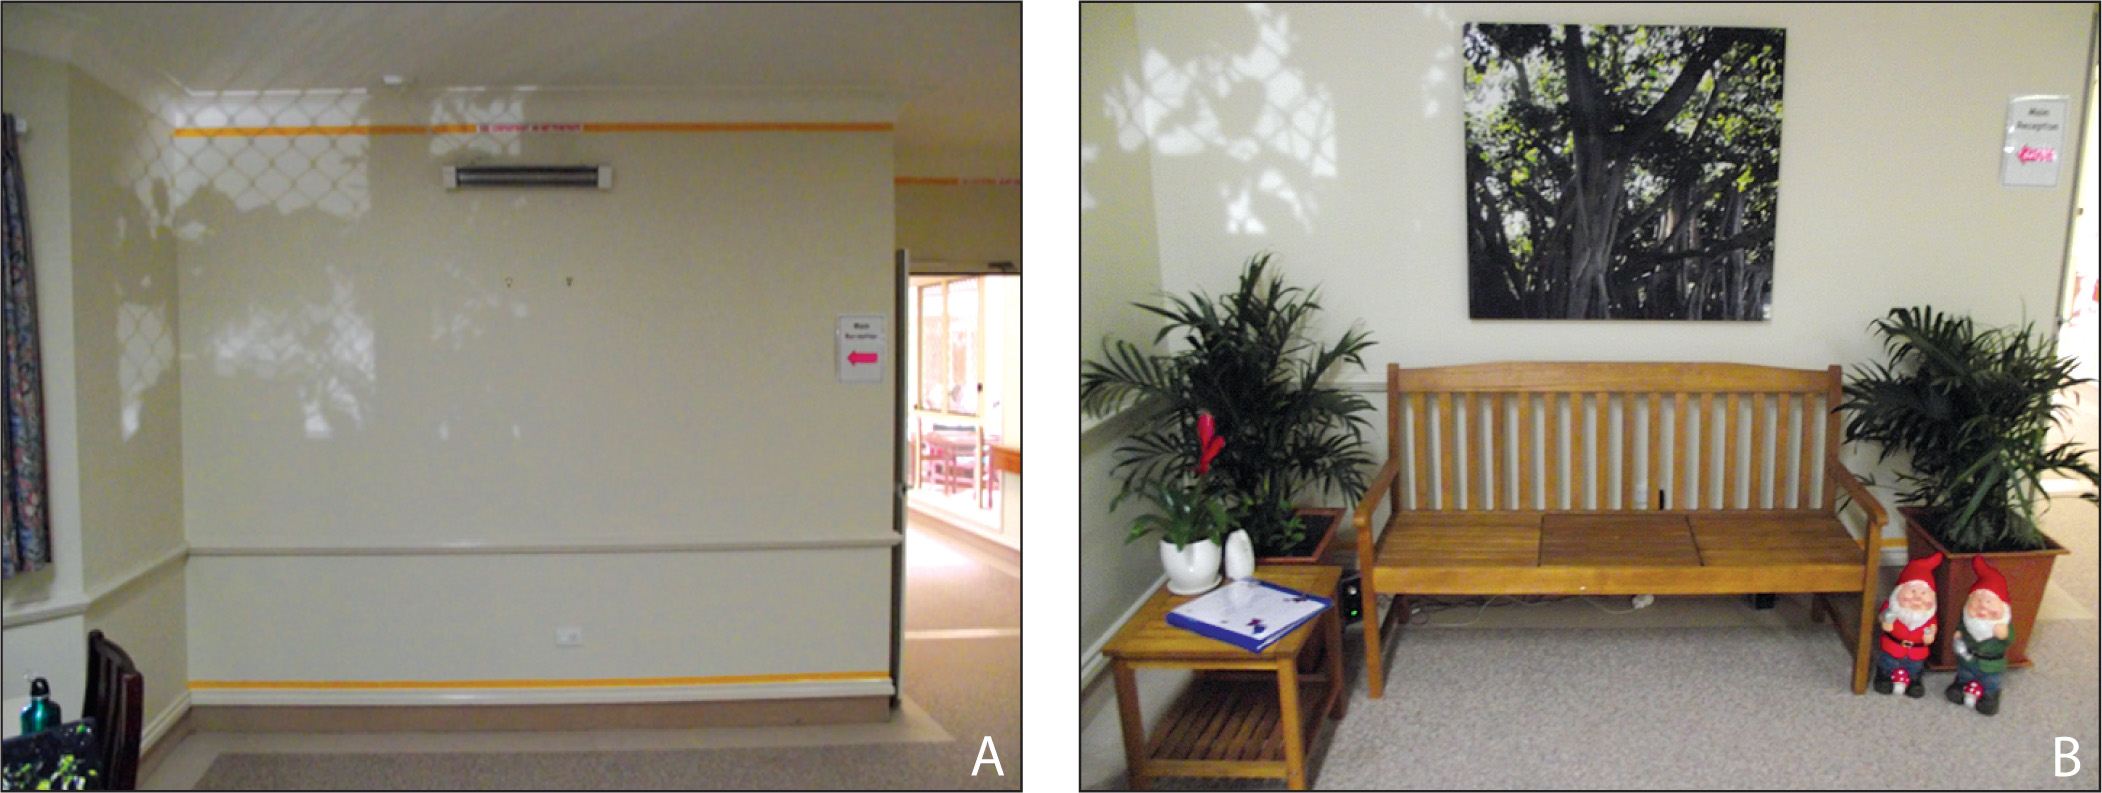 The indoor space (A) before and (B) after the multisensory biophilia installation was put in place.